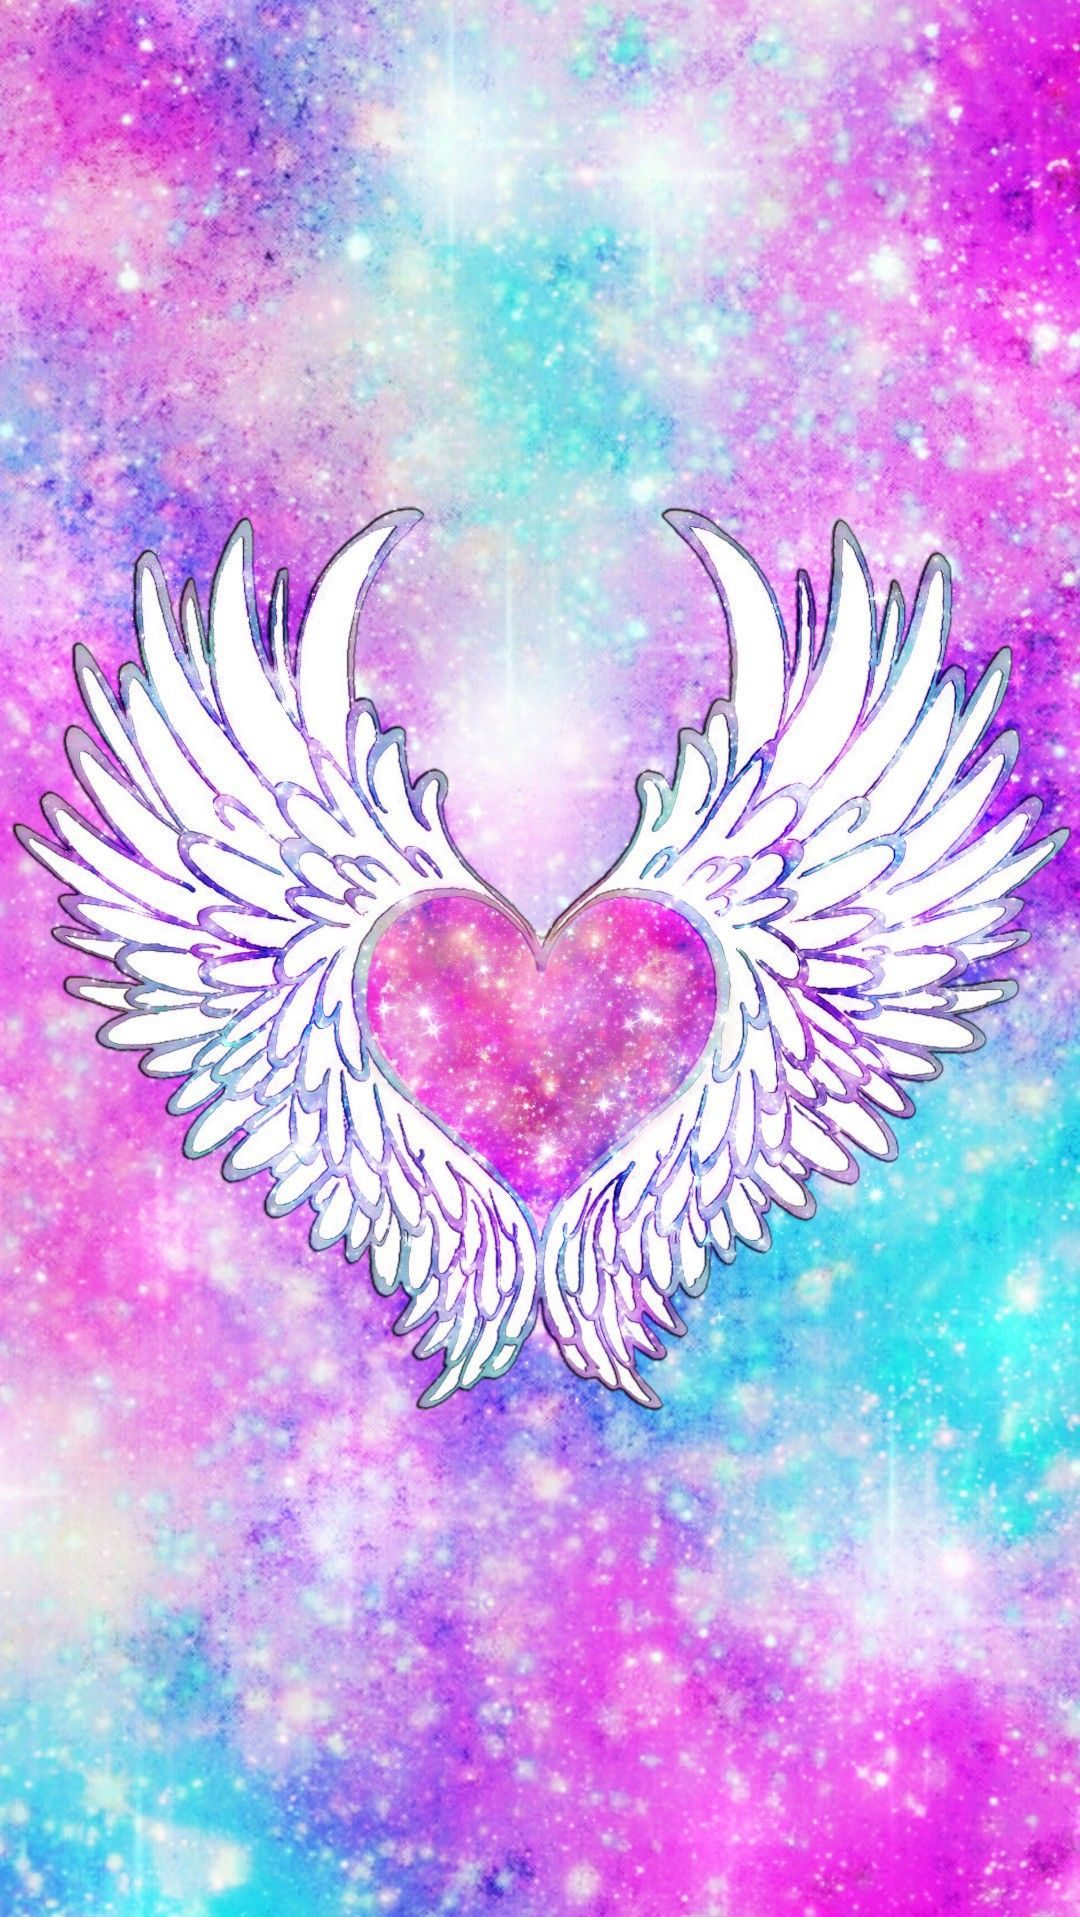 Wings Of Love Galaxy Made By Me Pink Galaxy Wallpapers Backgrounds Sparkles Glittery Art Cute Win Heart Wallpaper Love Wallpaper Wallpaper Backgrounds